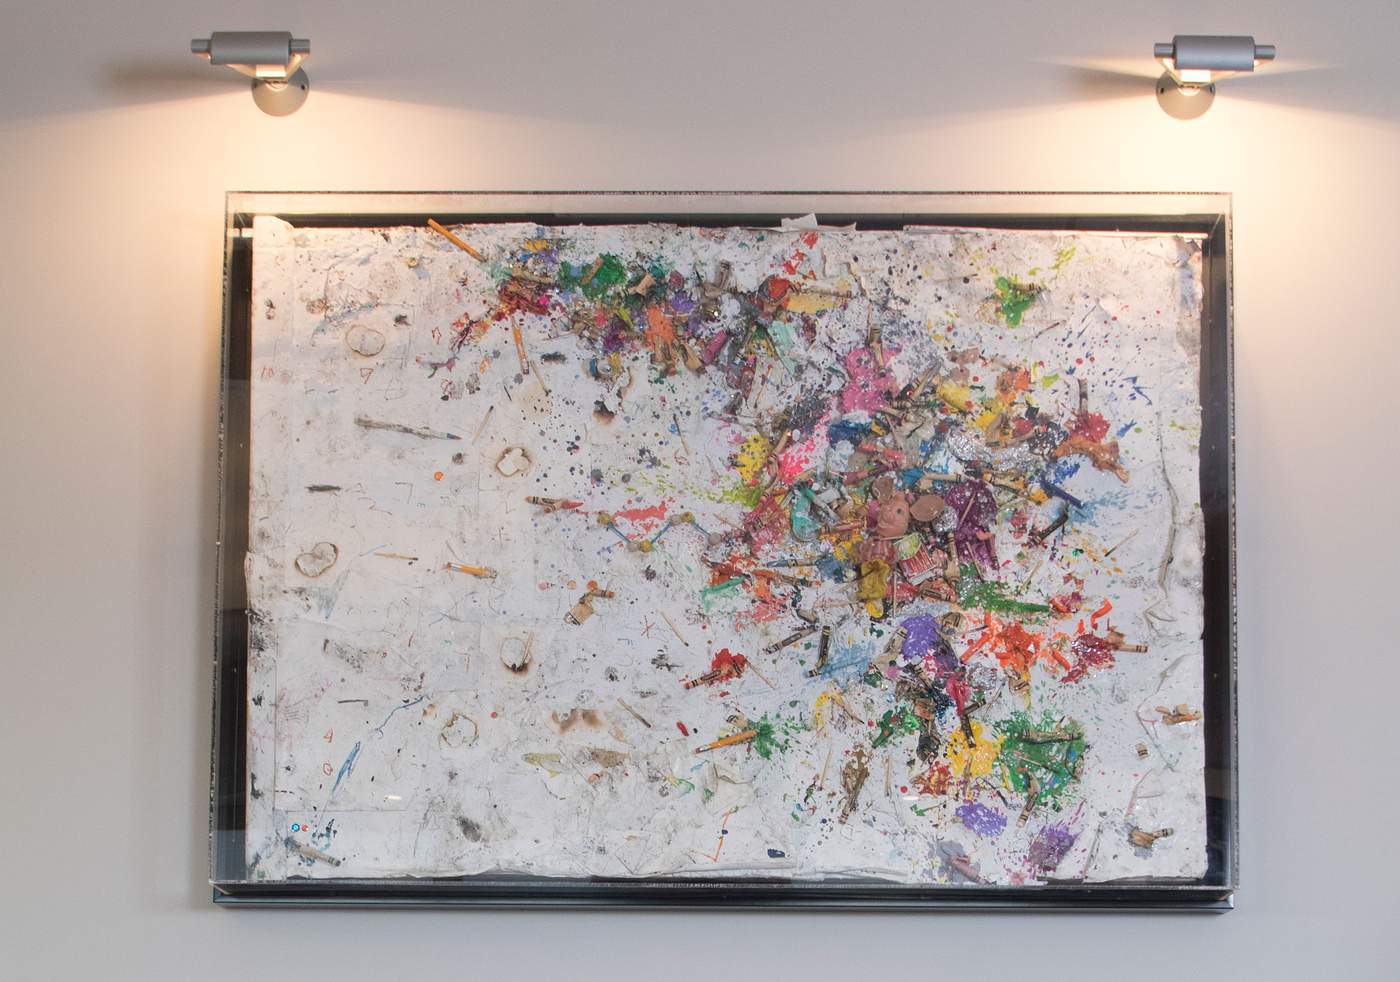 "3.      ""Mars Attacks,"" Greg Haberny, melted crayons, matches, plastic toys, pencils, dirt, and ash on paper, mounted on wood and plexi box frame, 2014""I like to surround myself with artwork that makes me happy and gives me positive energy,"" Mr. Bahadir said. He bought this piece at Art Basel Miami from Catinca Tabacaru Gallery.  ""Before I purchase a painting, I research the artist, the exhibitions they've done, the museums they've gotten into, what direction are they going in. If I feel comfortable about the value and where it's at, I go ahead with the purchase. But I need to really feel like it belongs to me. Rather than it being a business, it should be pleasurable. Emerging artists, established artists, I like to have a balance between those,"" he said."